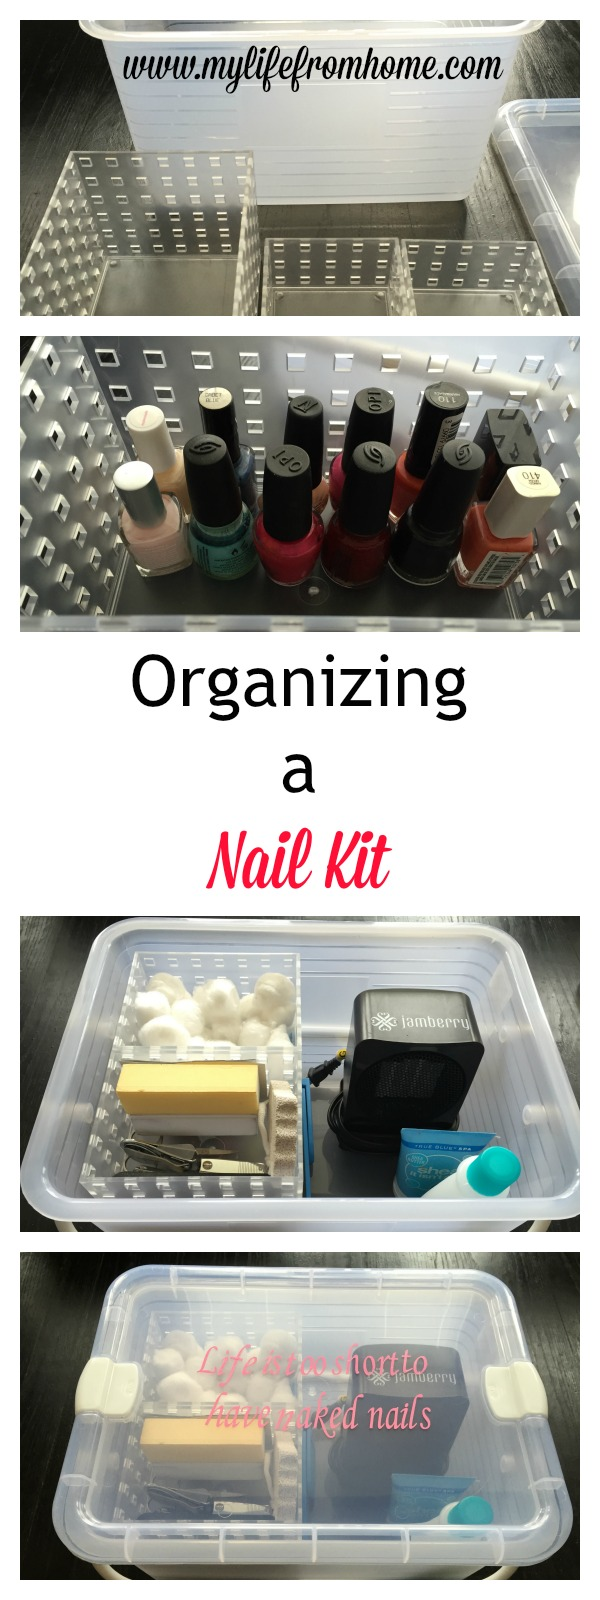 Organizing a Nail Kit by www.mylifefromhome.com